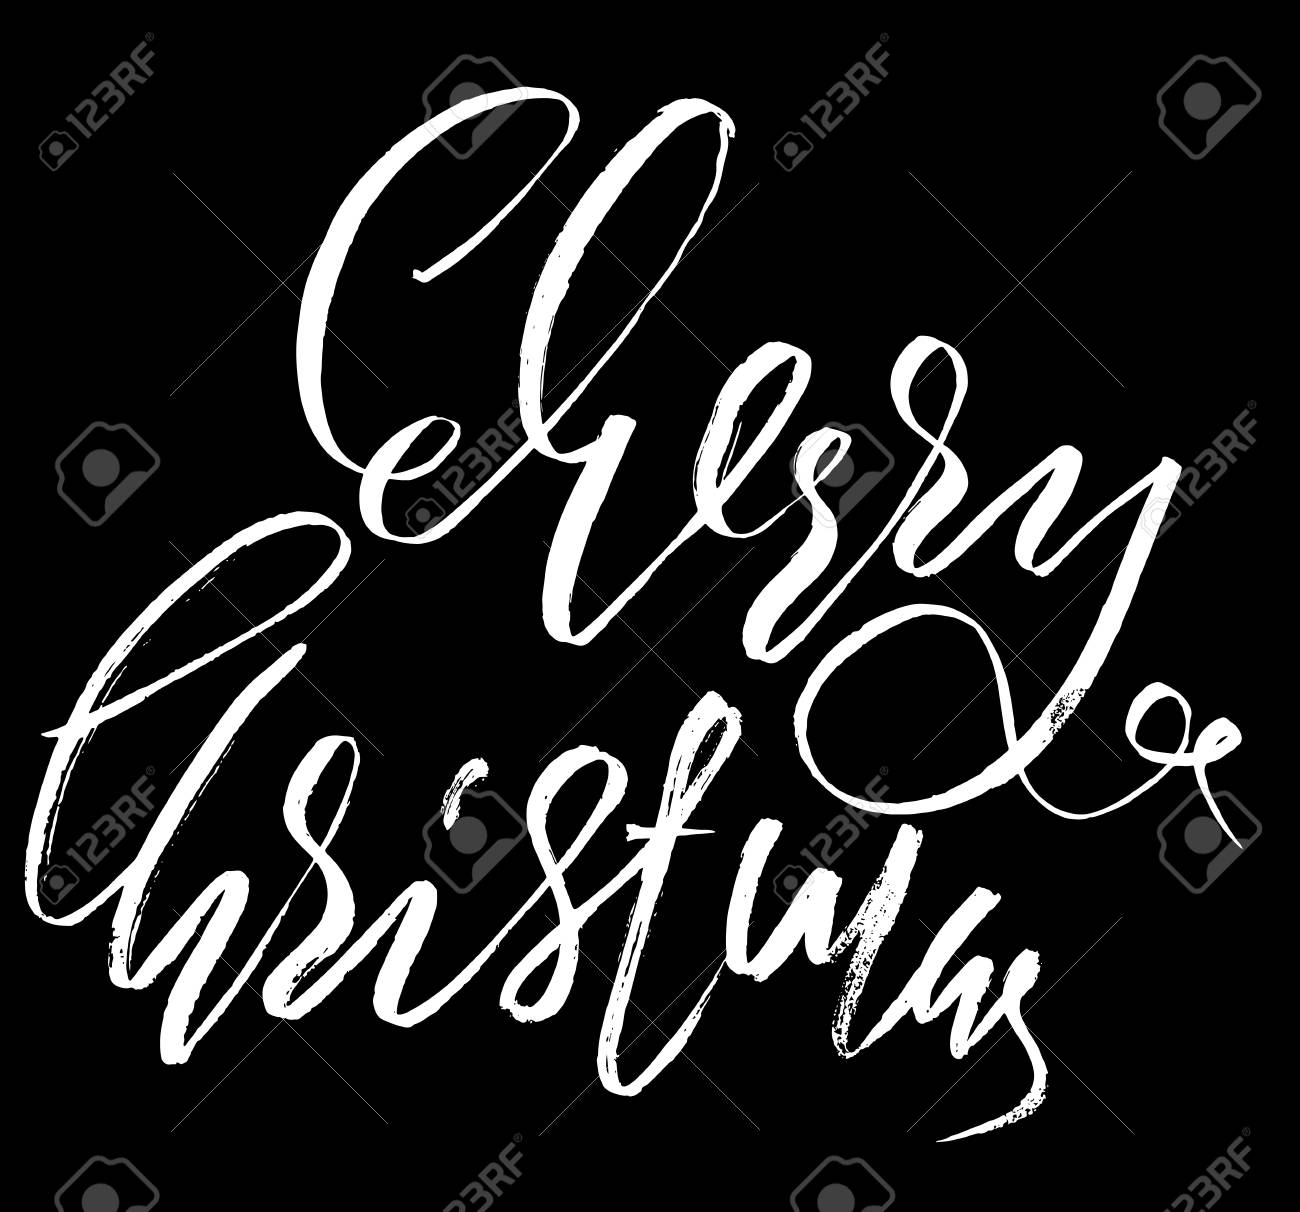 Classic Lettering Design For A Christmas Greetings Card Black